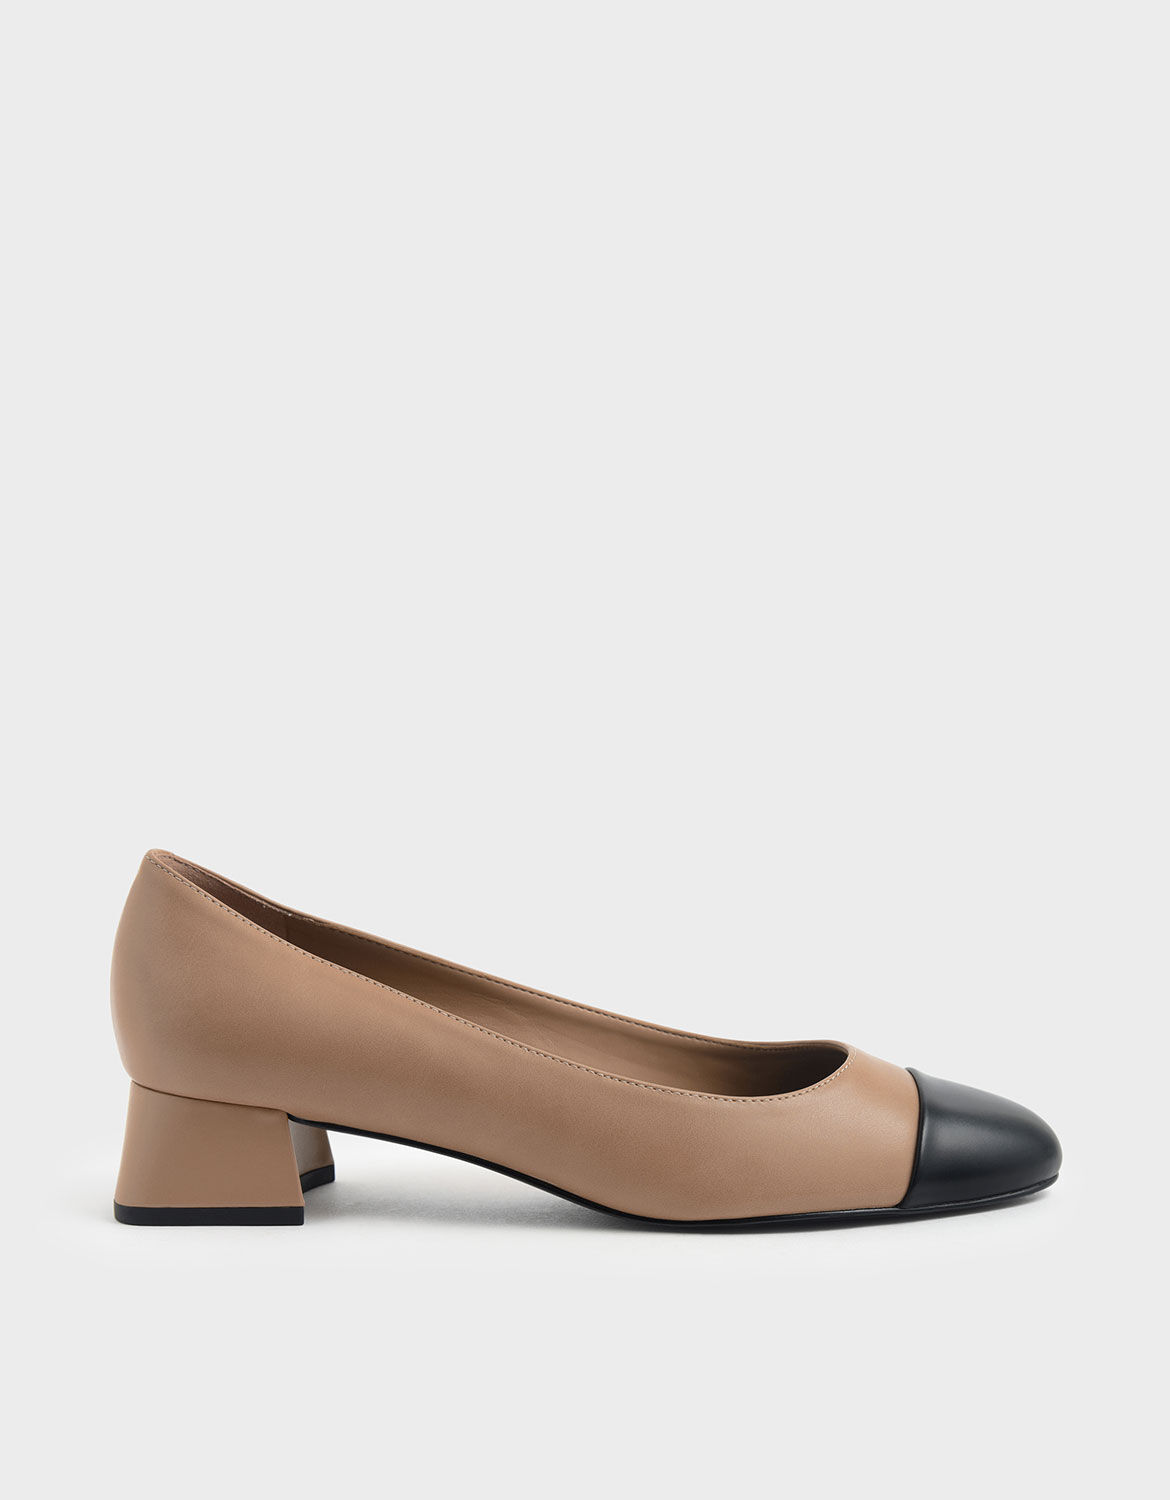 Nude Two-Tone Round Toe Curved Block